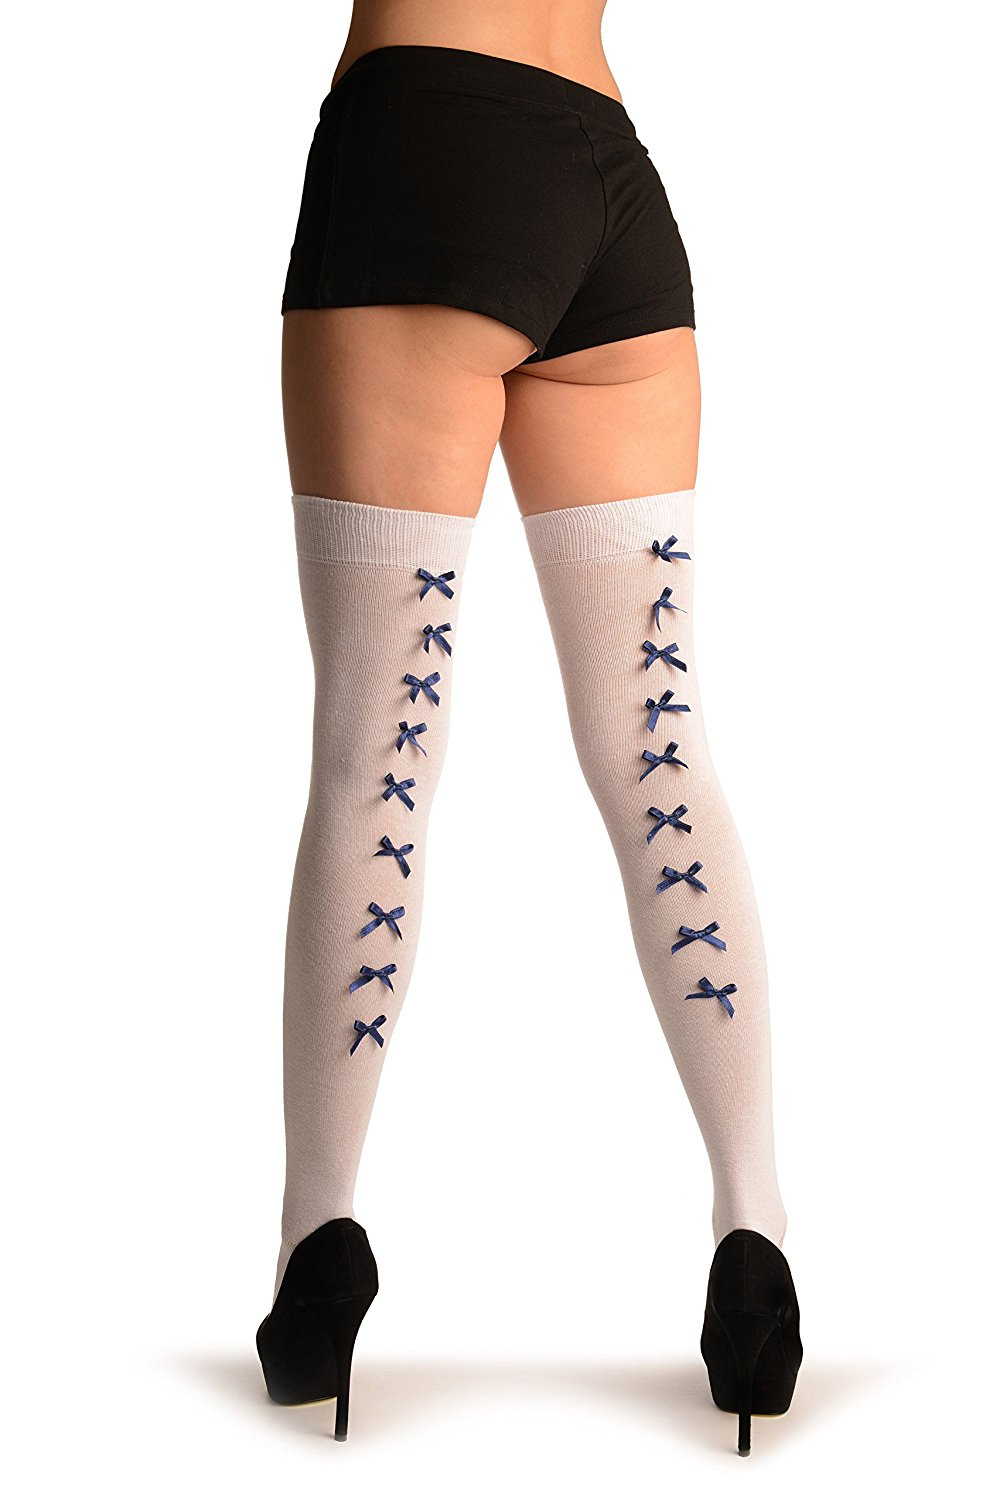 7f6d6a4d8c3 Get Quotations · White With Dark Blue Satin Bows At The Back - Over The Knee  Socks